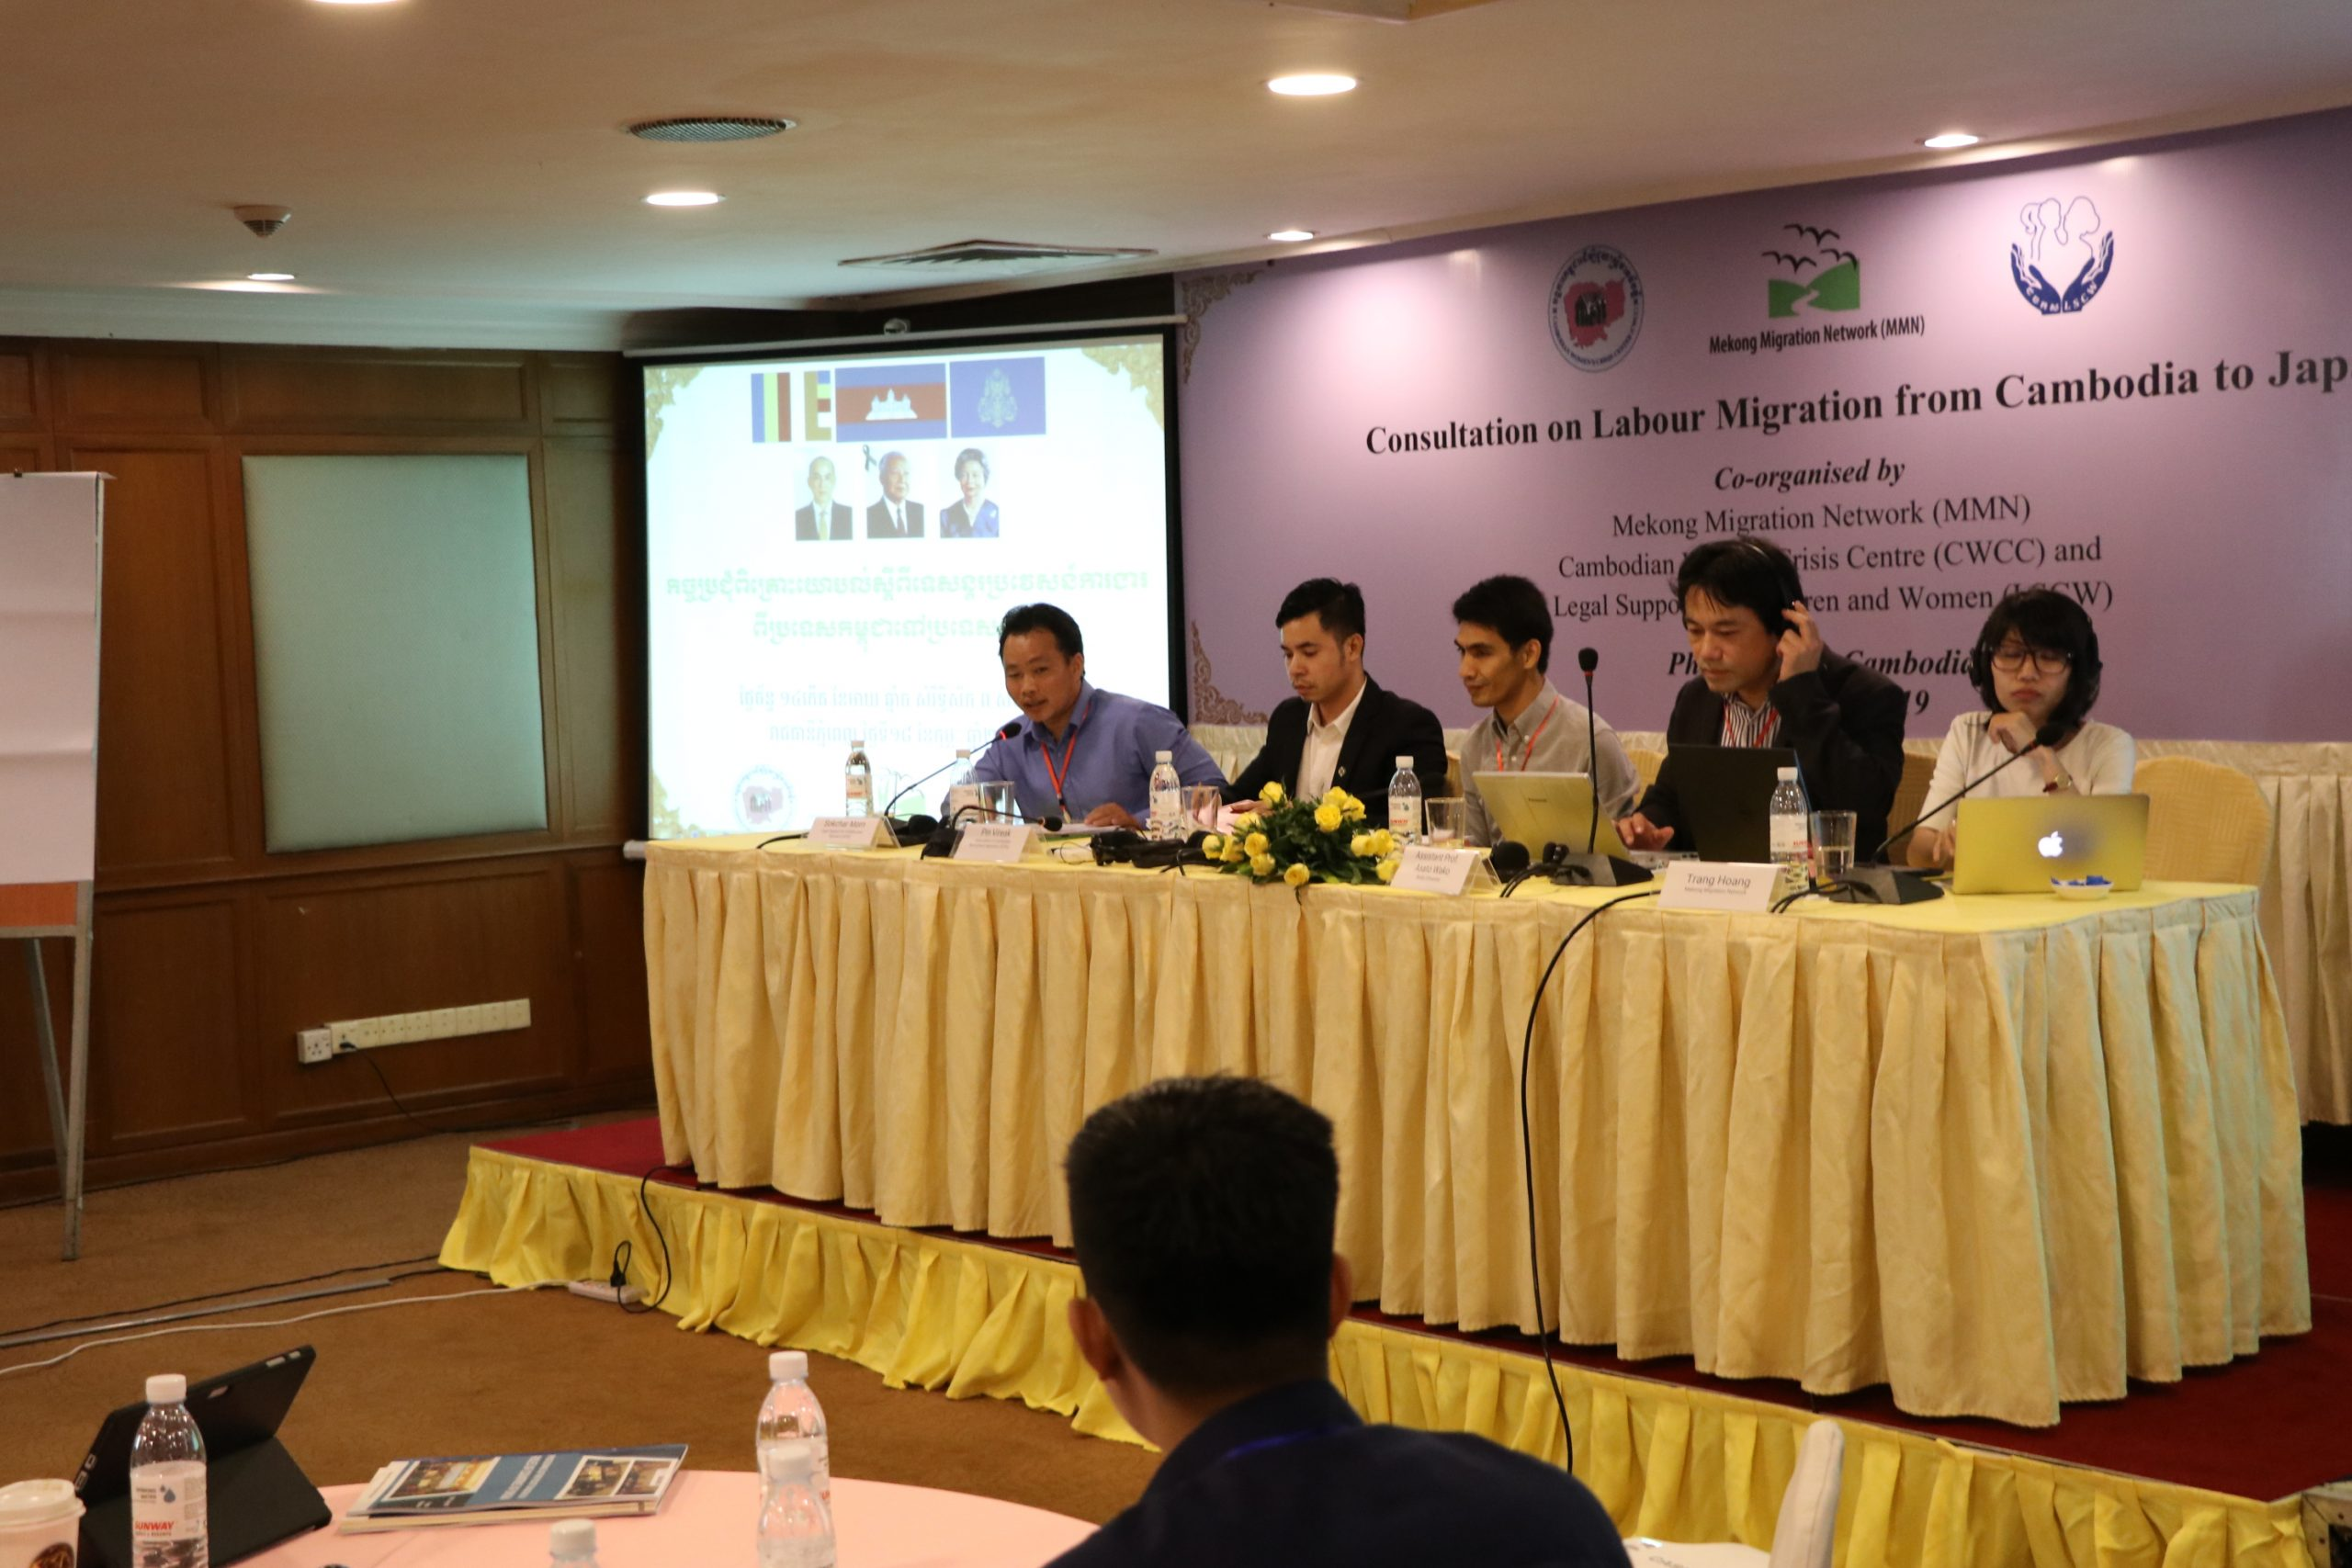 Multi-Stakeholder Consultation on Labour Migration from Cambodia to Japan, February 2019, Phnom Penh, Cambodia